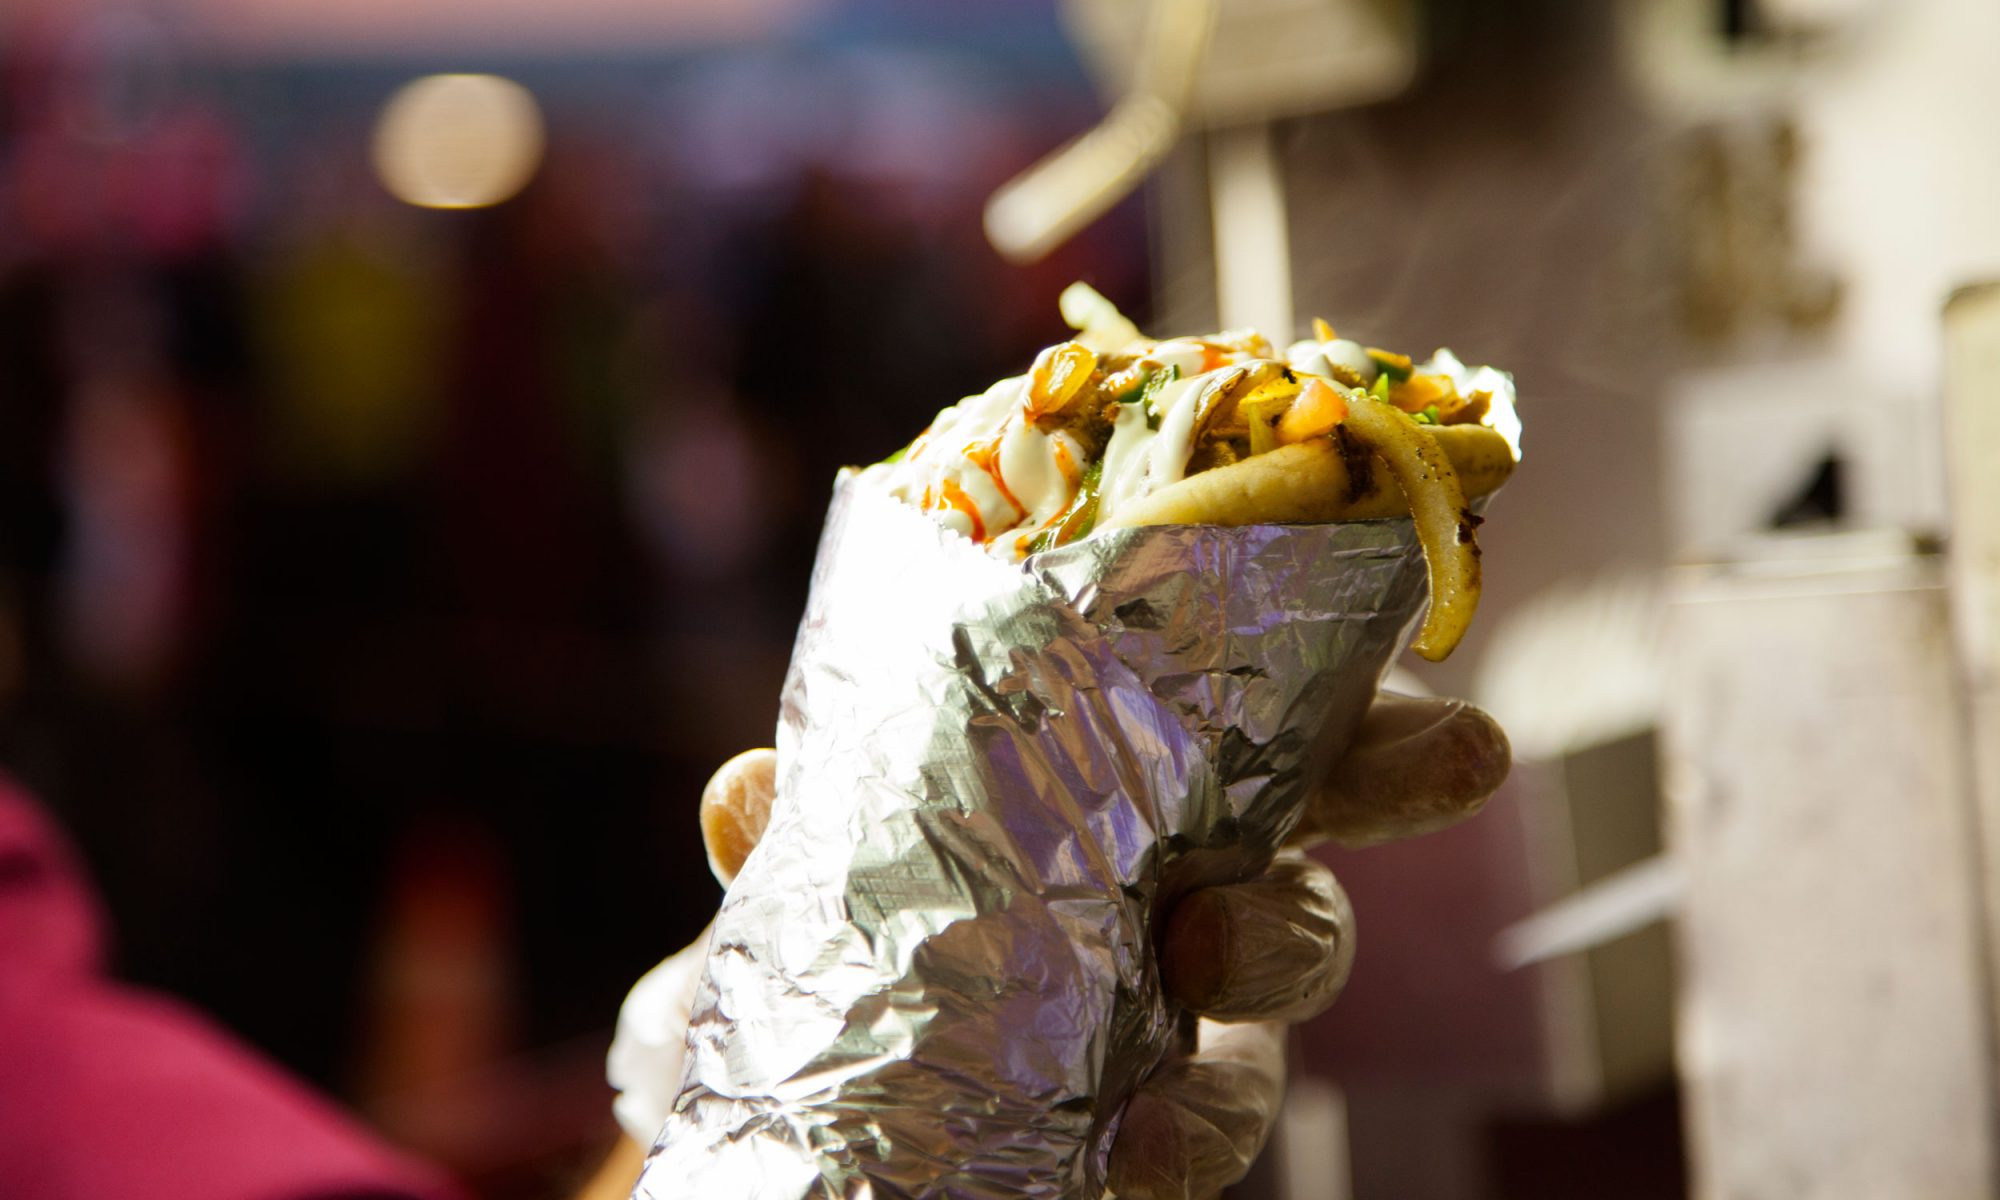 EC:  assets%2Fmessage-editor%2F1468603627902-gettyimages-506015670_burrito